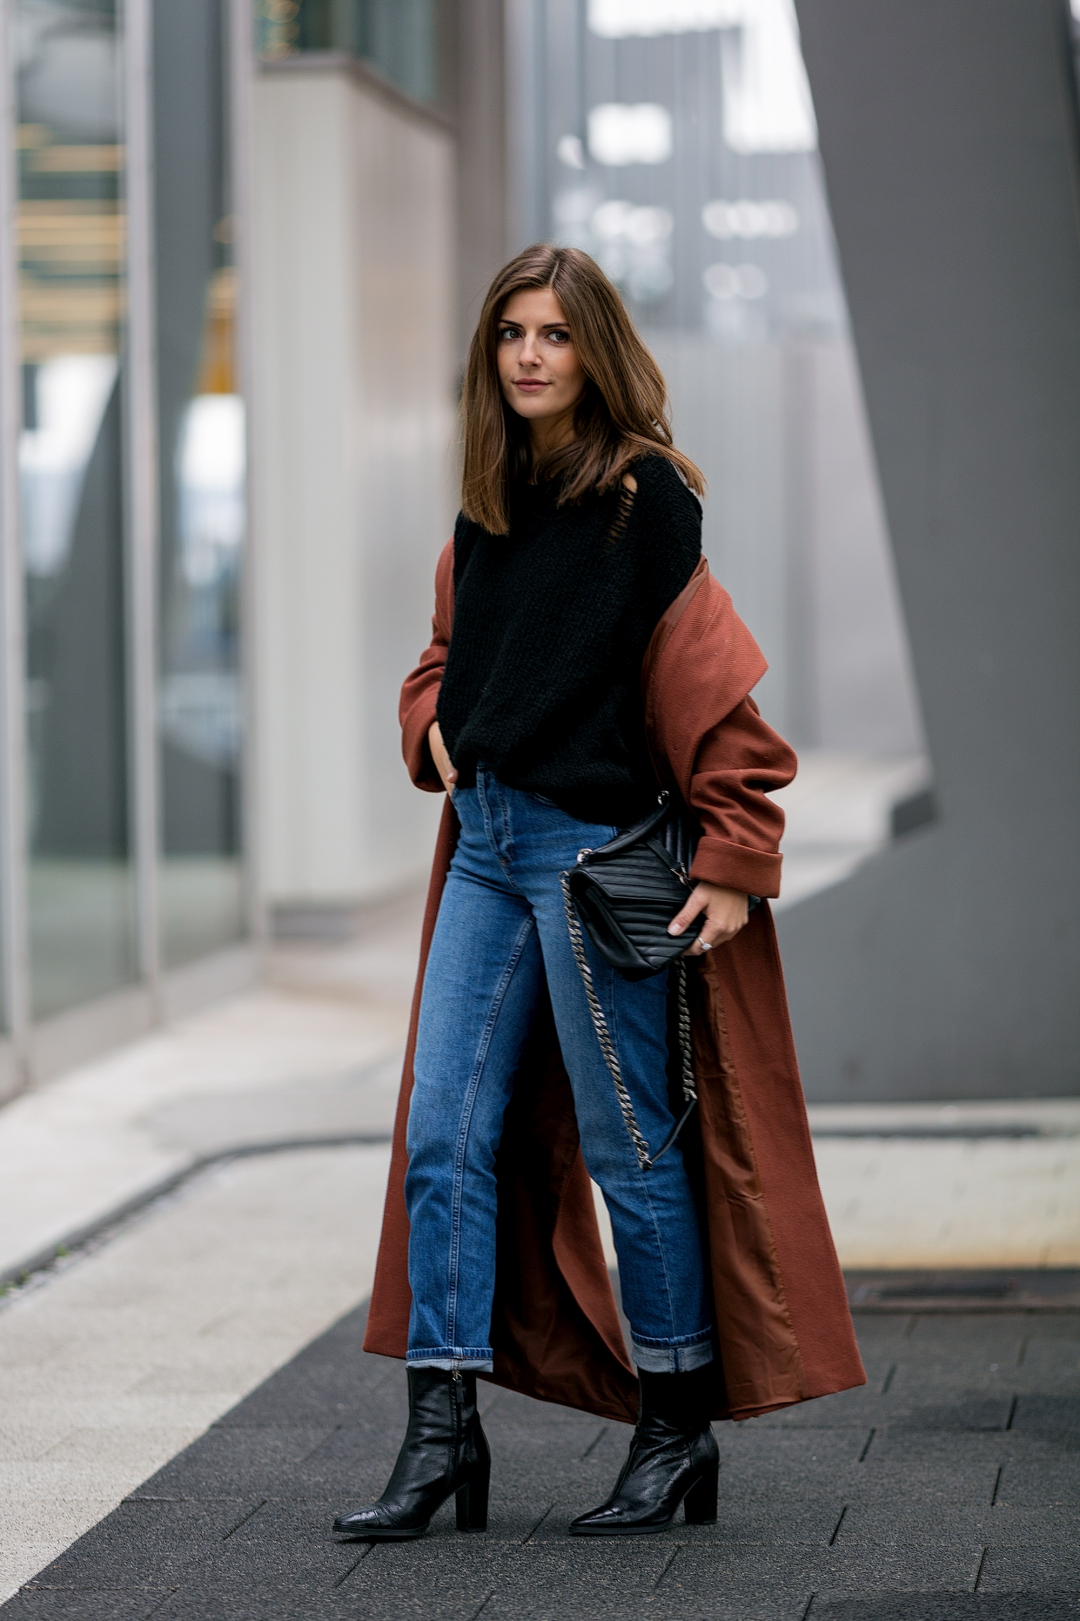 Style guide 5 ways to wear mom jeans simple et chic - Styling ideen ...